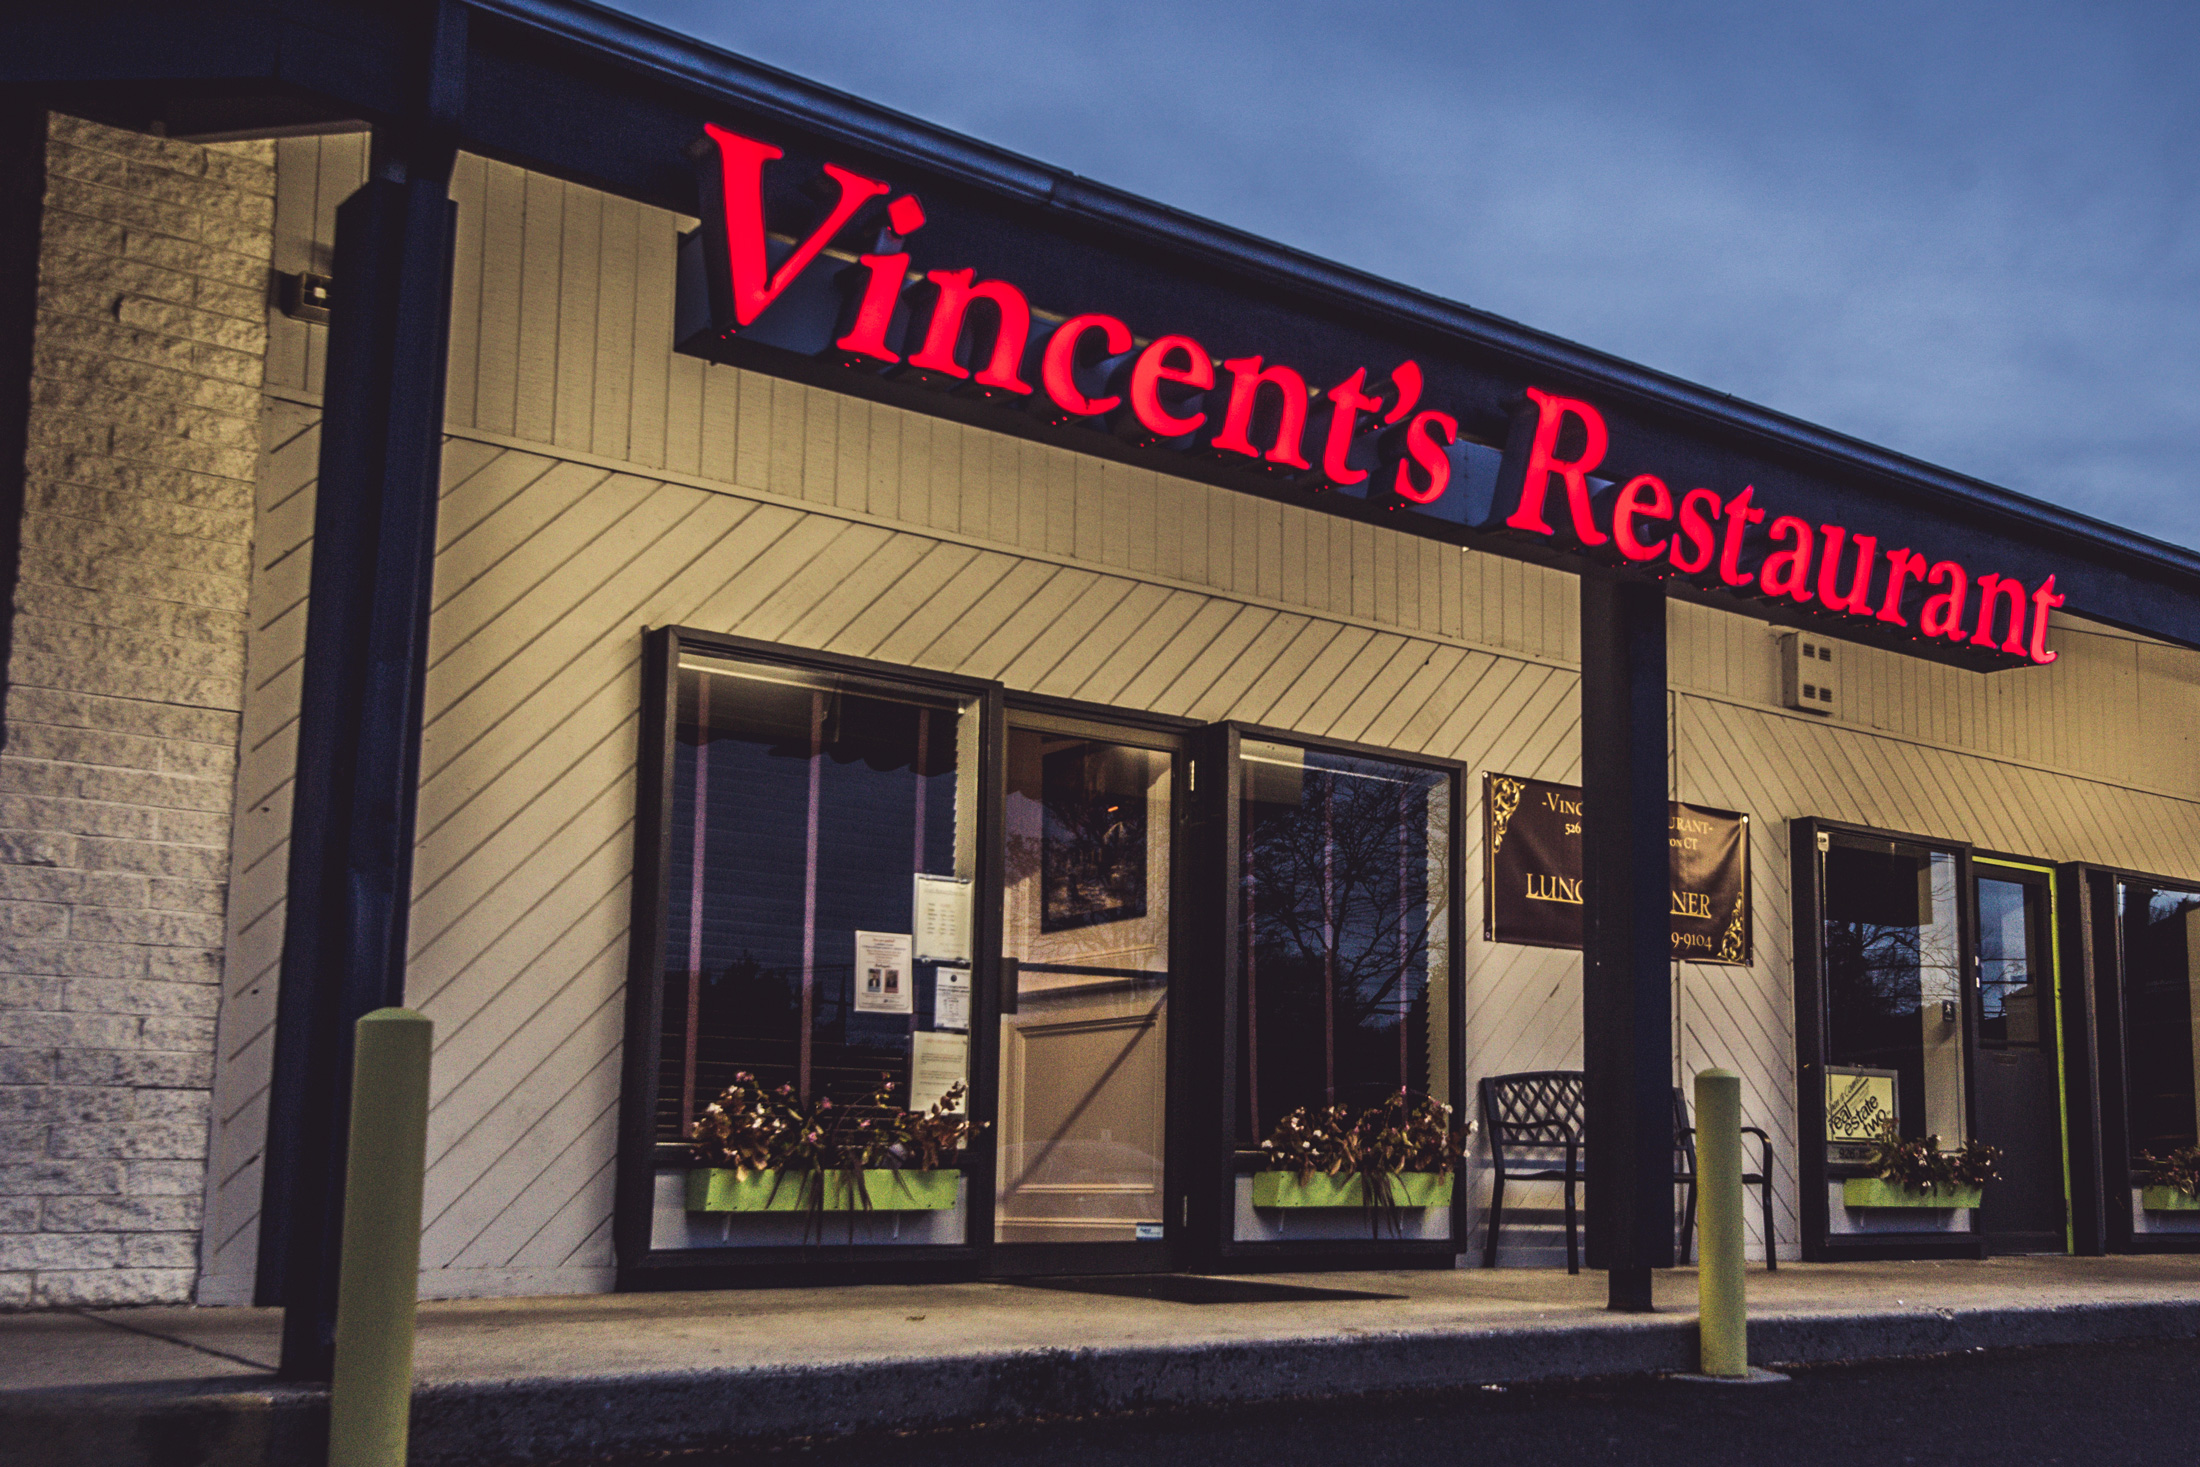 Vincent's Restaurant - Shelton, CT